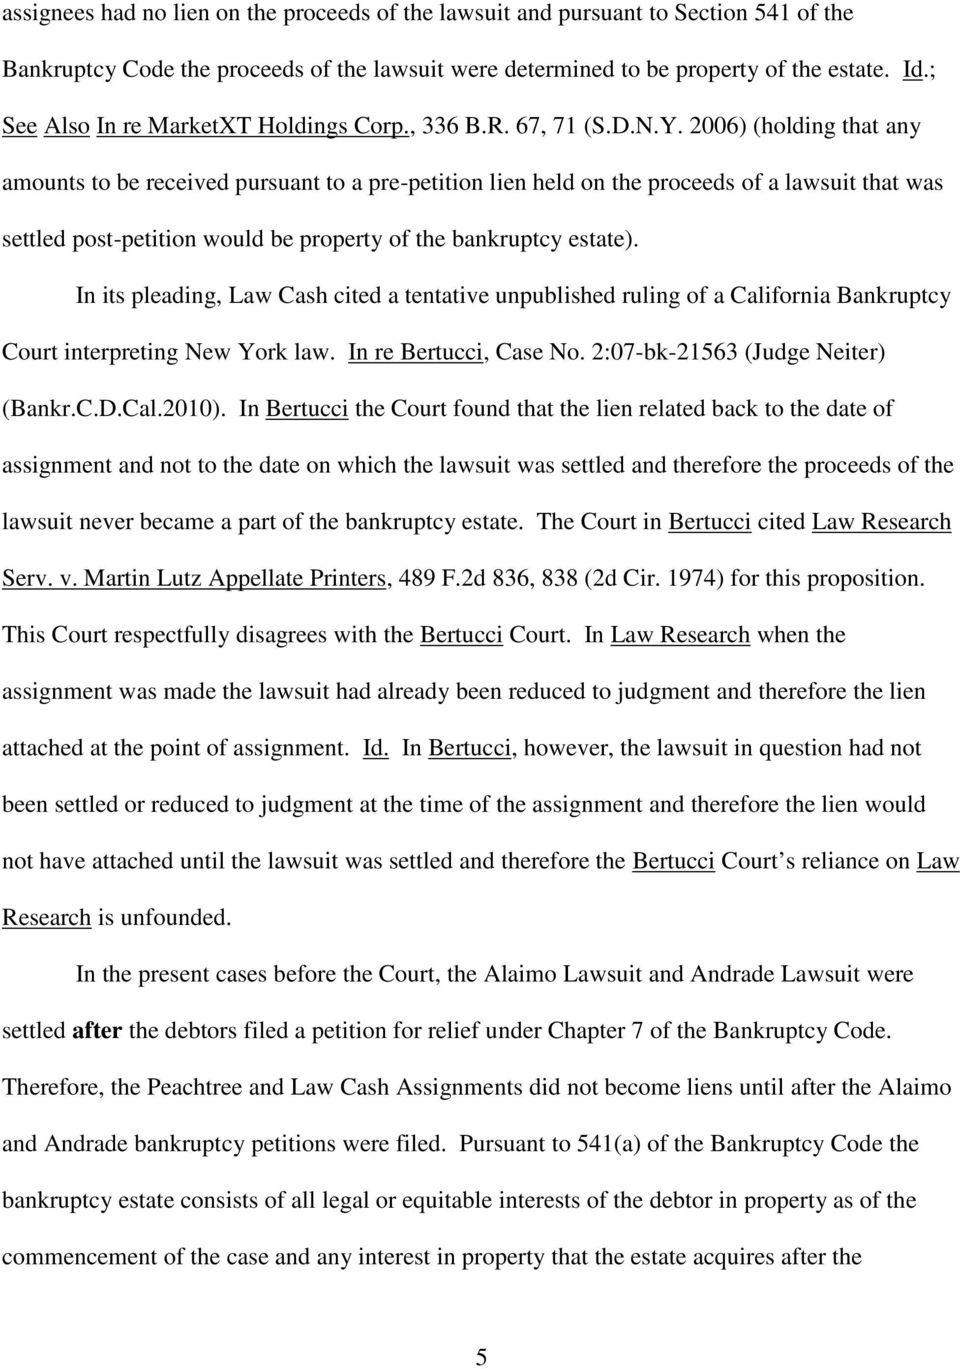 2006) (holding that any amounts to be received pursuant to a pre-petition lien held on the proceeds of a lawsuit that was settled post-petition would be property of the bankruptcy estate).